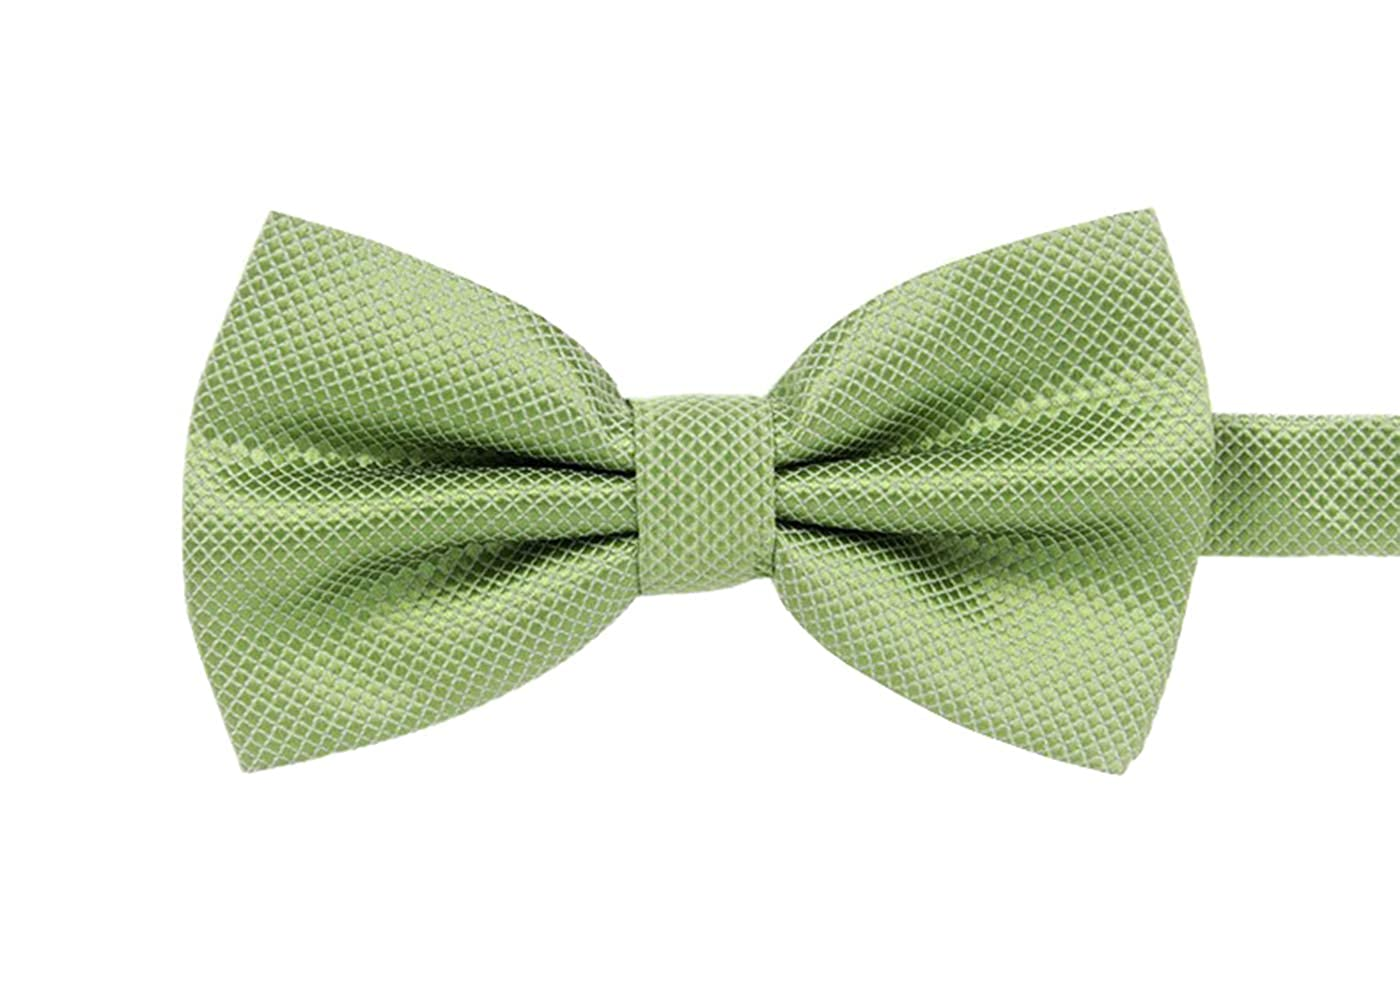 MENDENG Mens Solid Color Check Plaid Formal Pre-tied Bow Ties Tuxedo Dress Tie